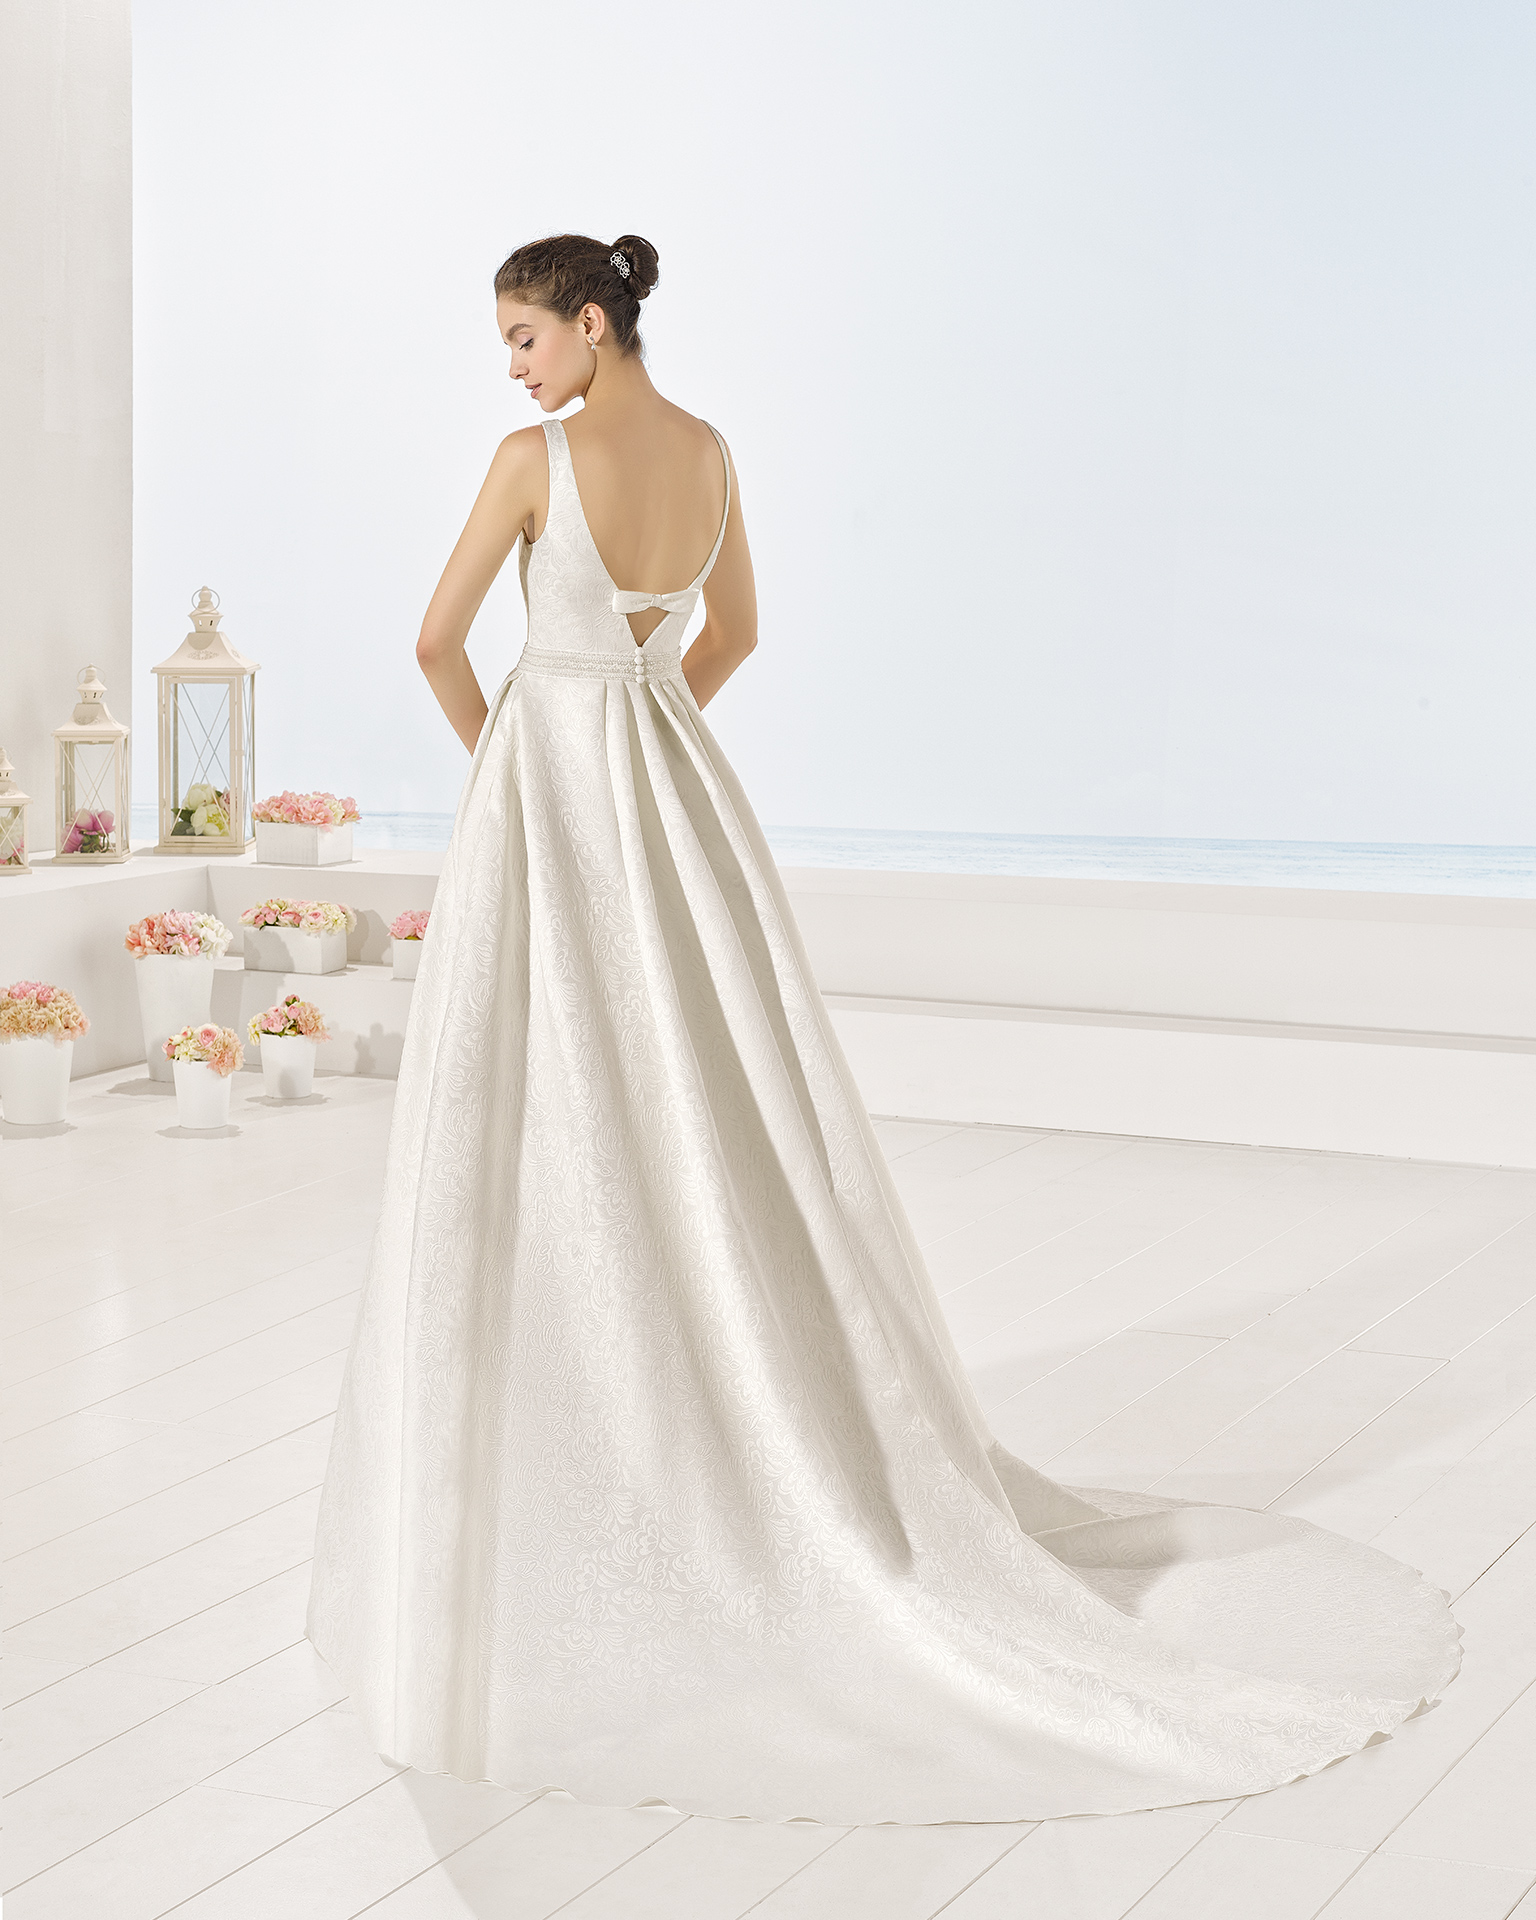 Yvette wedding dress, Luna Novias 2017